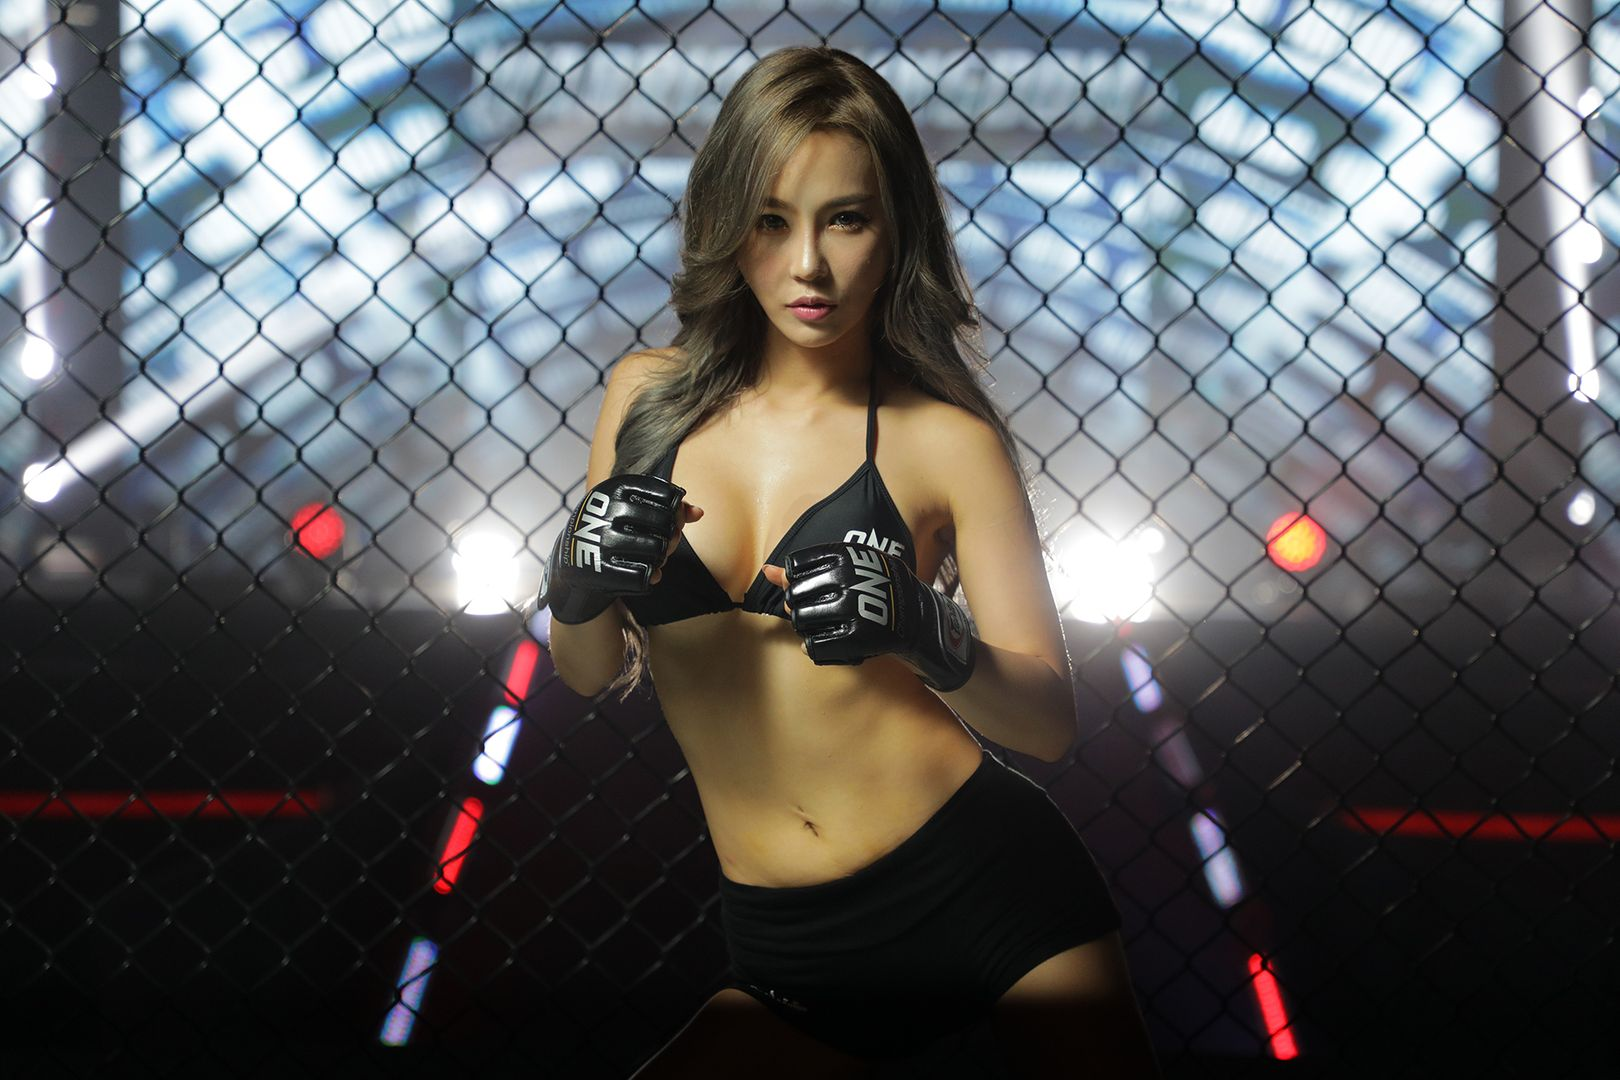 ONE Championship ring girl DJ Jina poses inside the cage and in front of the entrance way